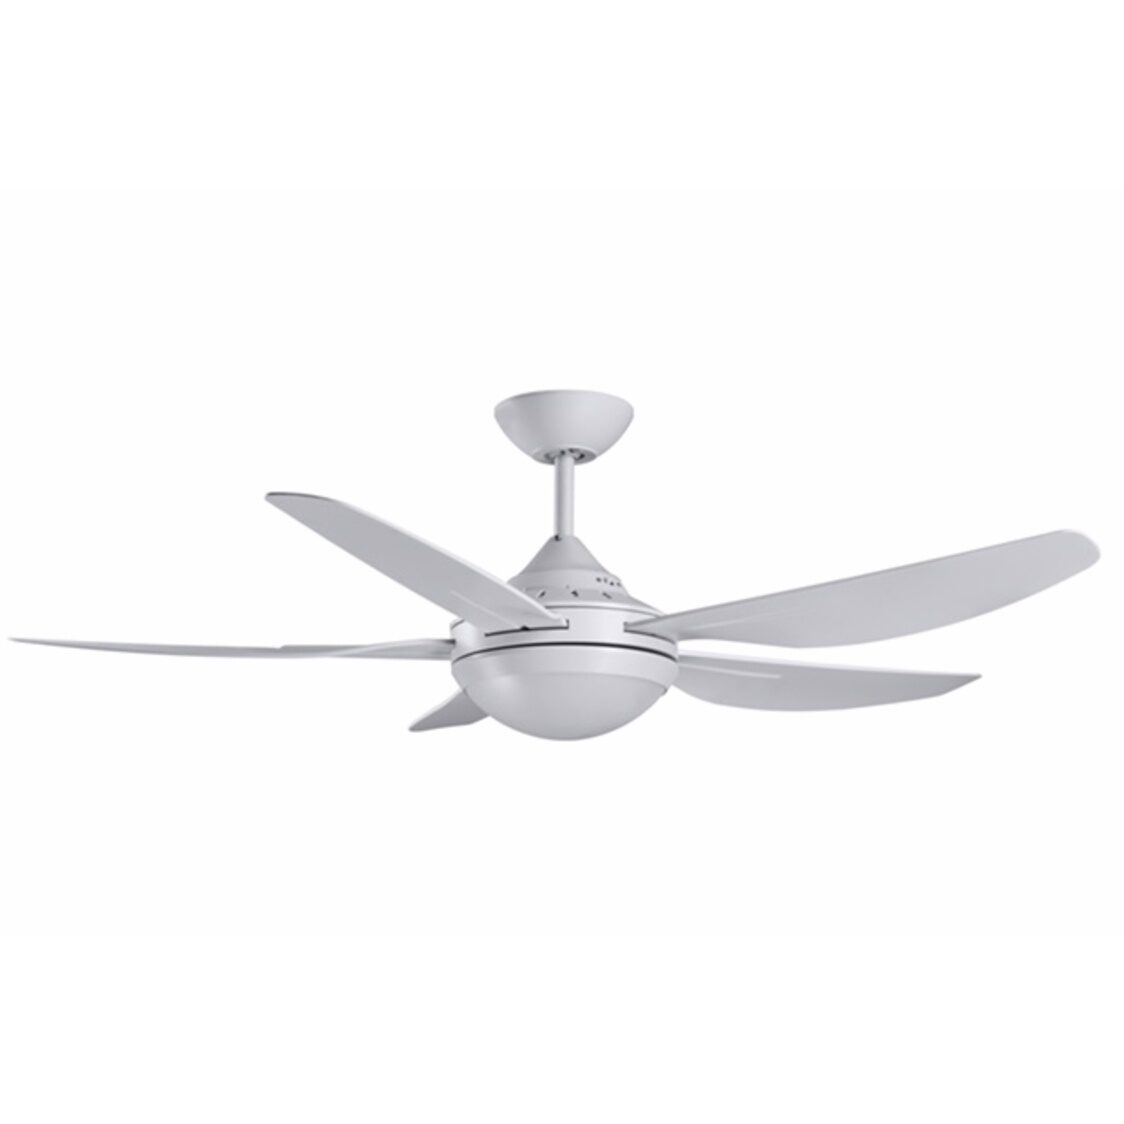 Mandurah Ceiling Fan With Remote And Tri-Color Led Light Kit White 48